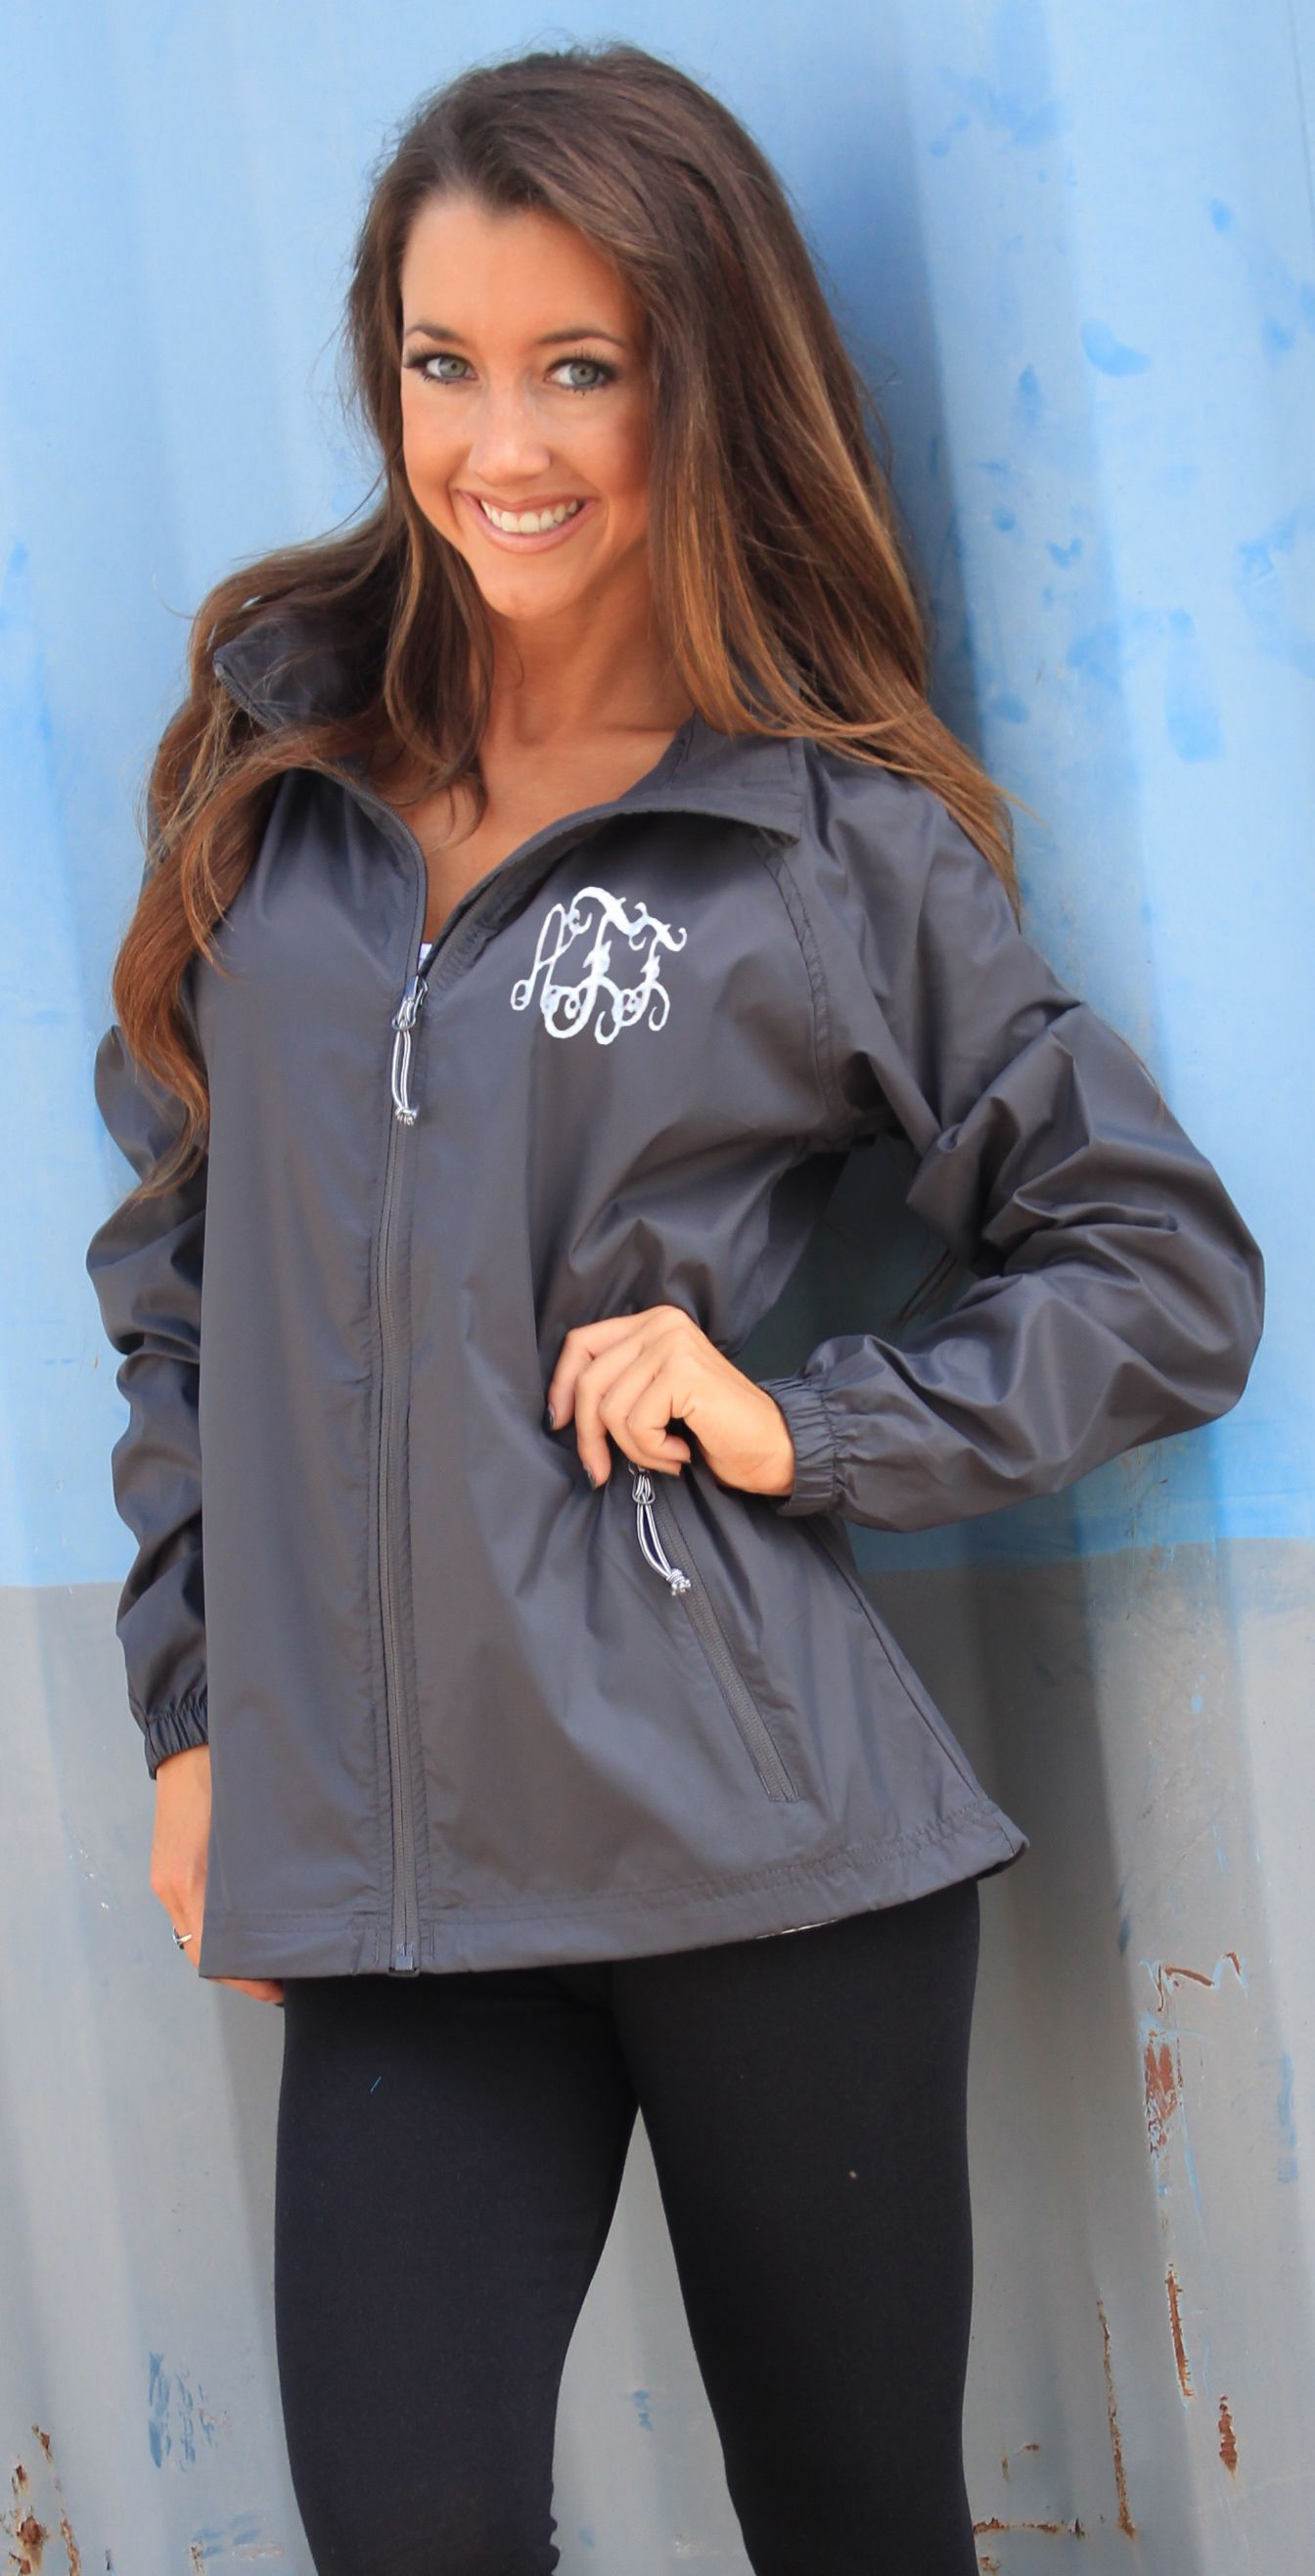 Monogrammed Windbreaker Jackets at Marleylilly.com! | Perfectly ...